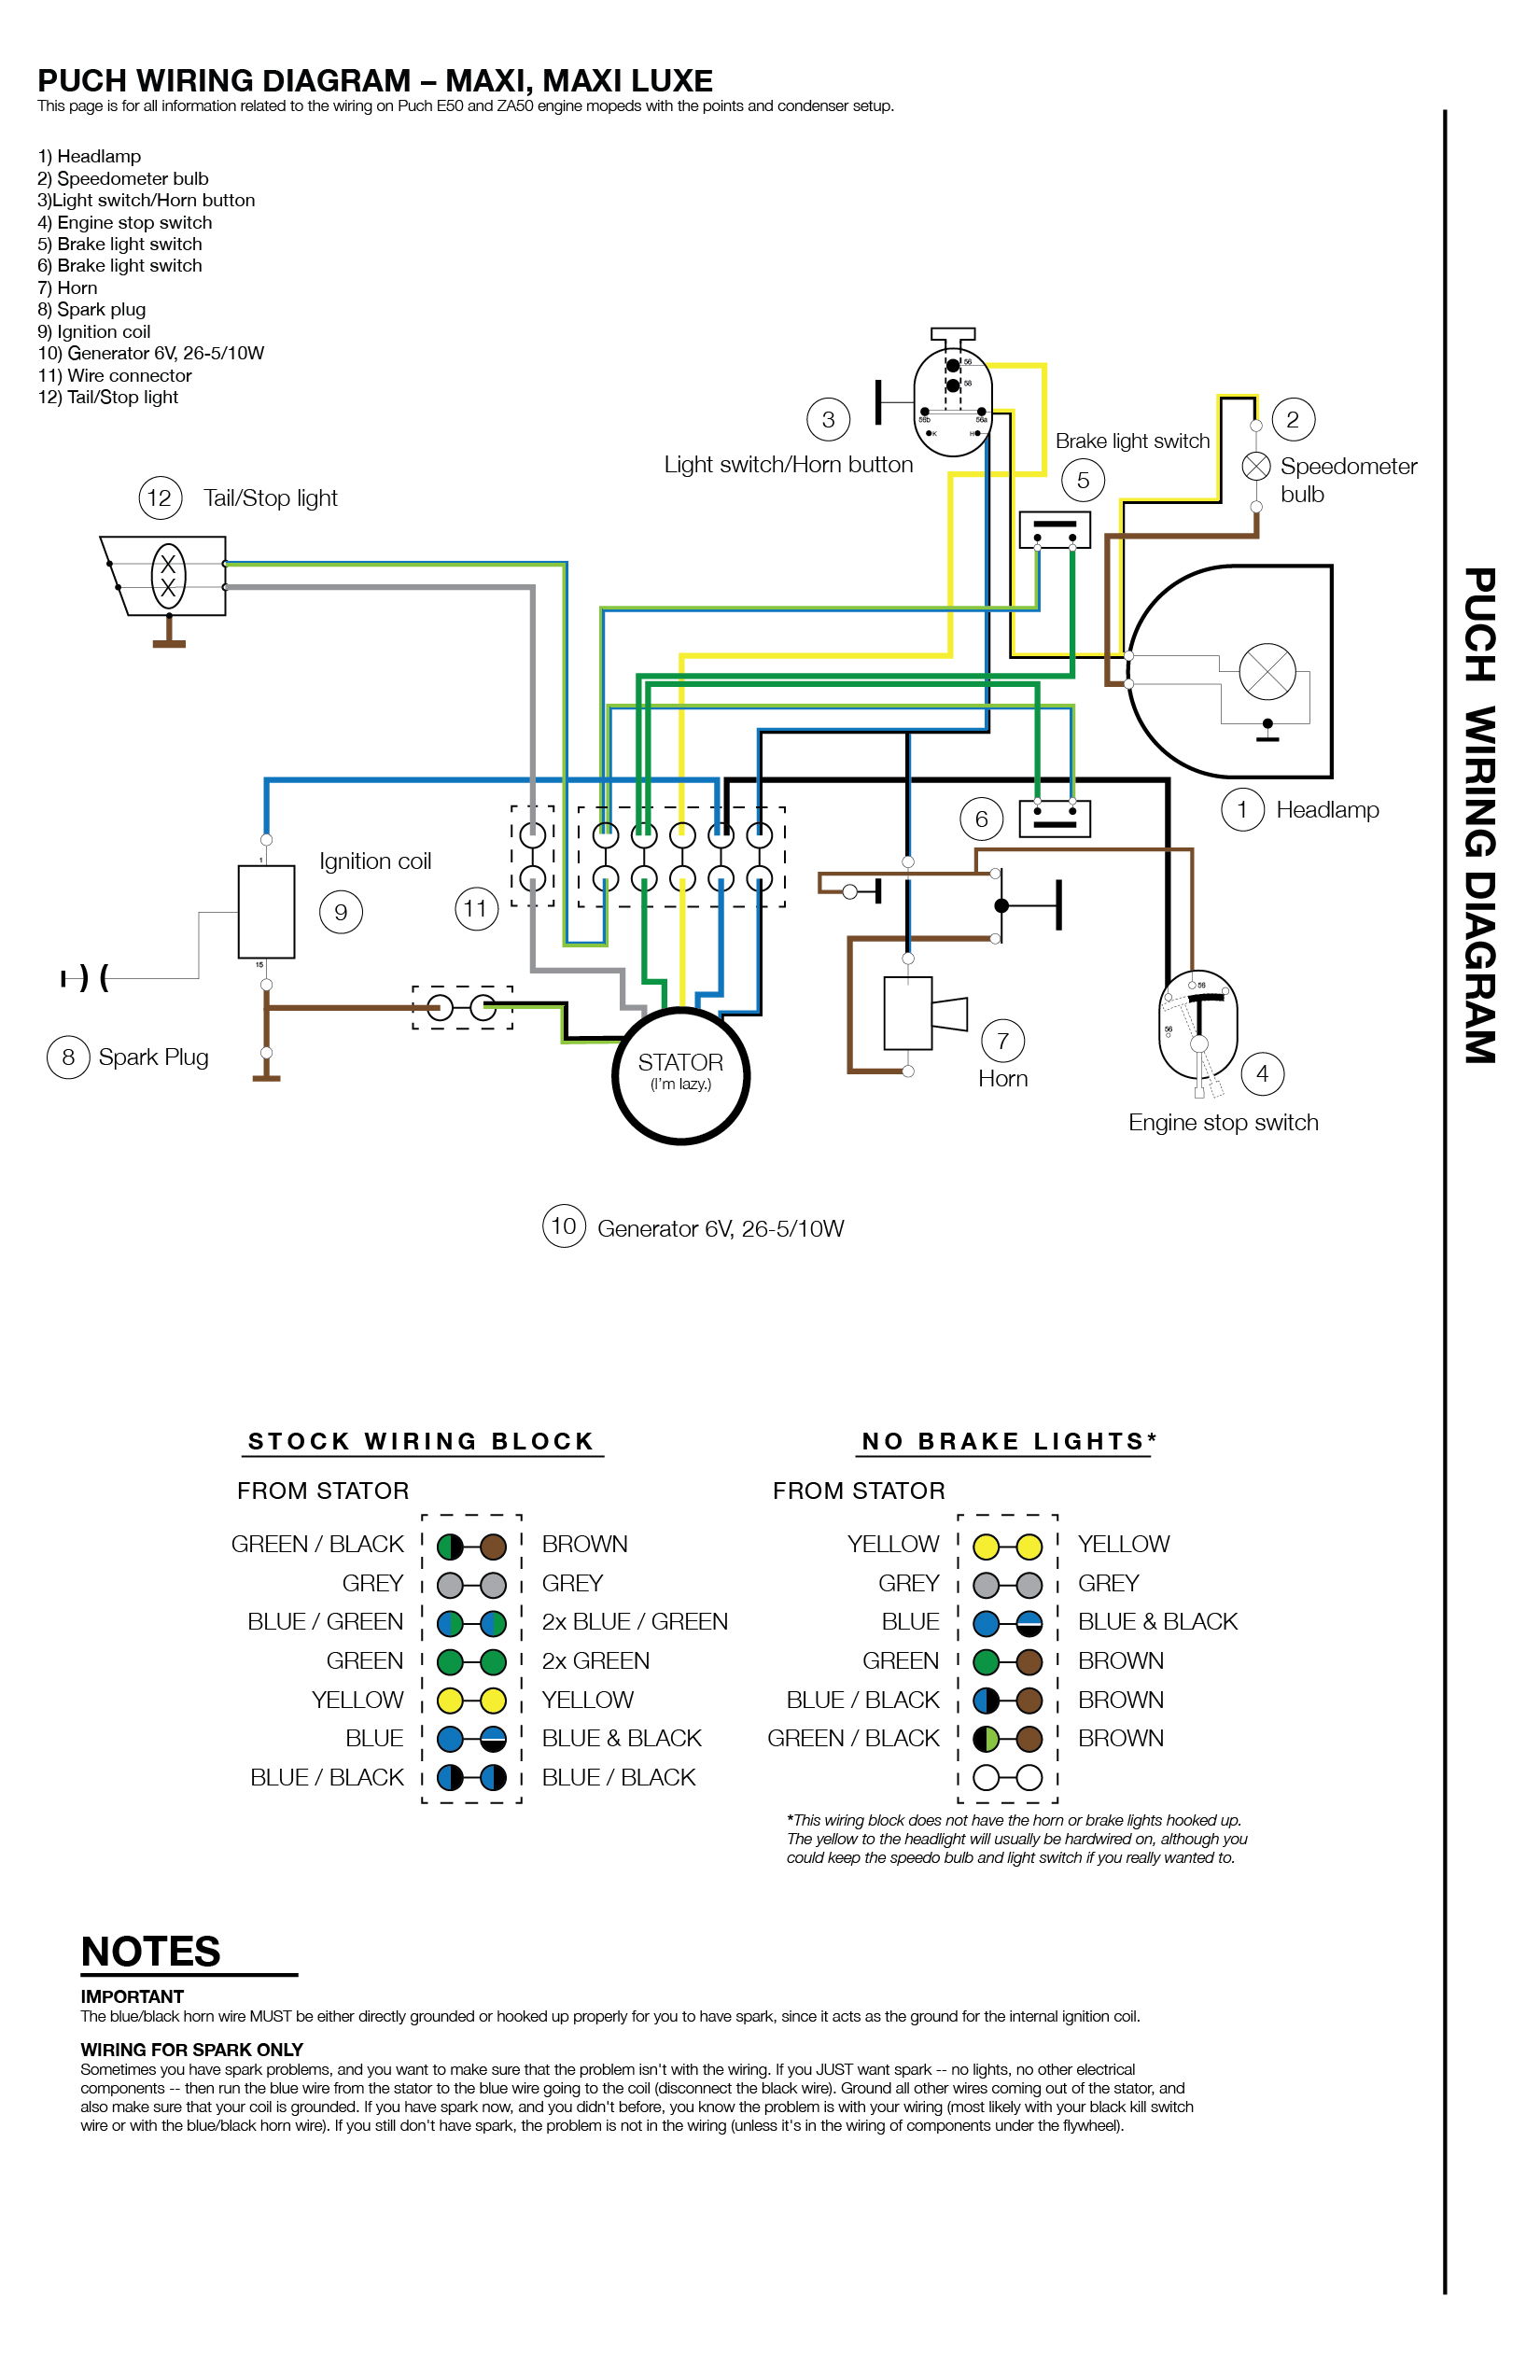 2 light switch wiring - Basar.tbcct.co on 3 wire switch wiring, 3 pole switch wiring, 3 switch box wiring,